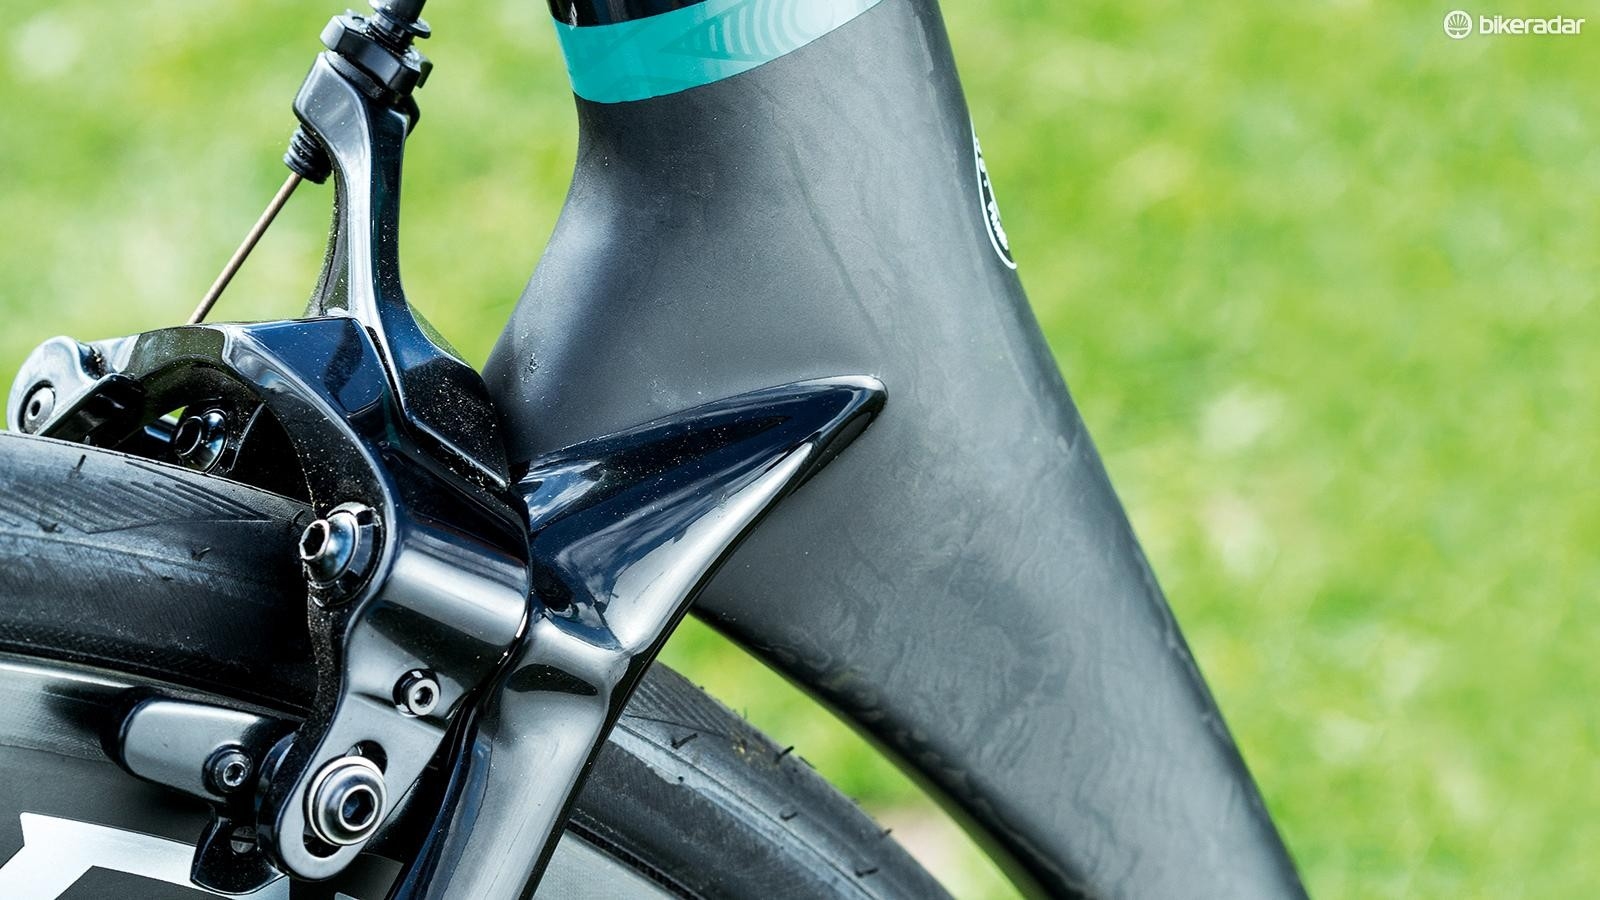 Direct-mount rim brakes allow for greater tyre clearance, and are a nice modern touch